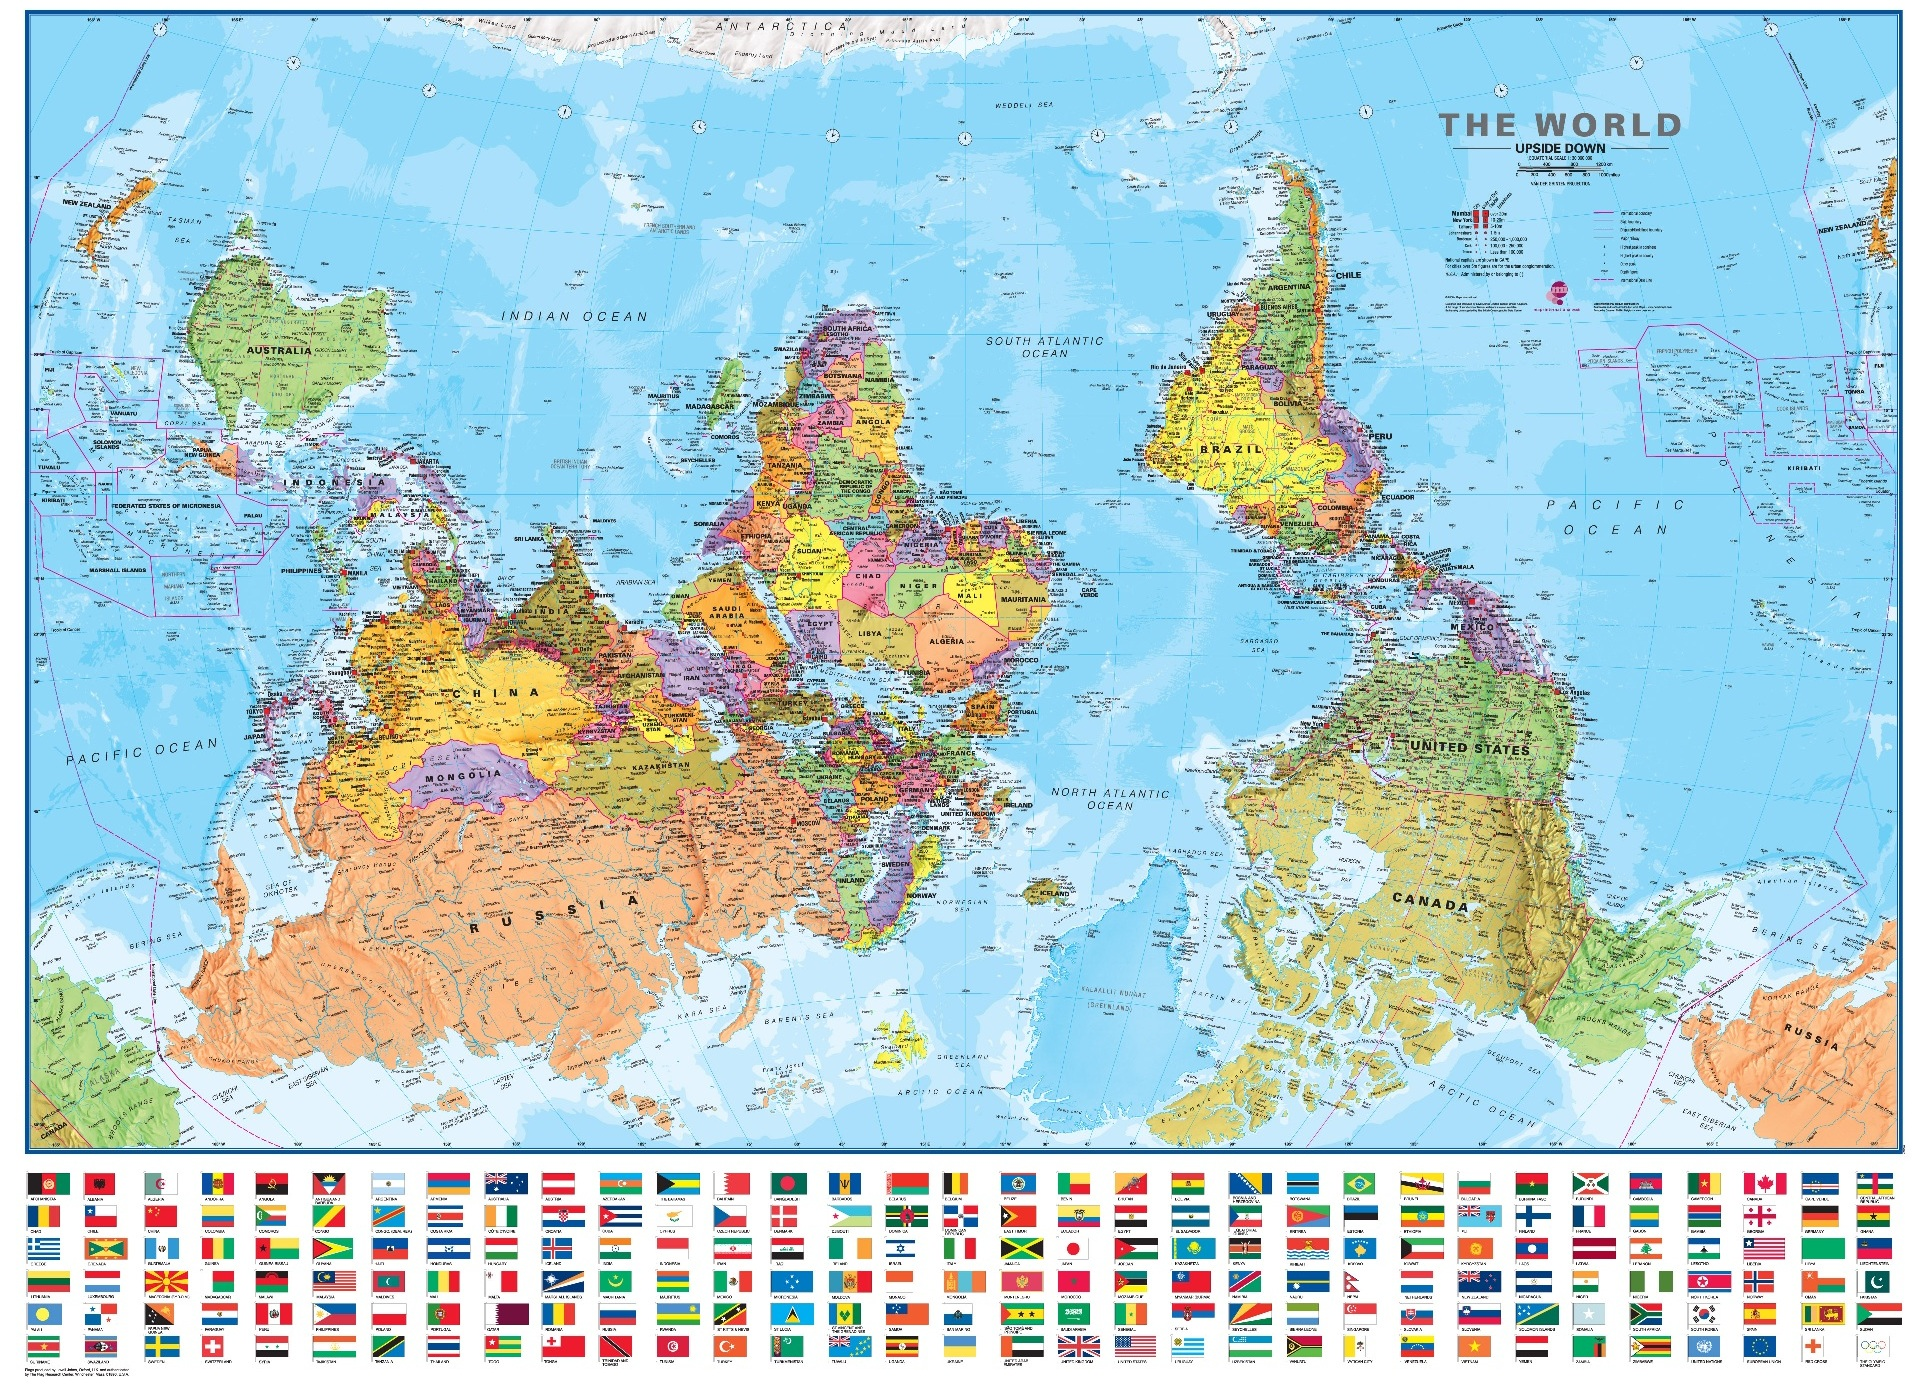 about the upside down map of the world sacredmargins